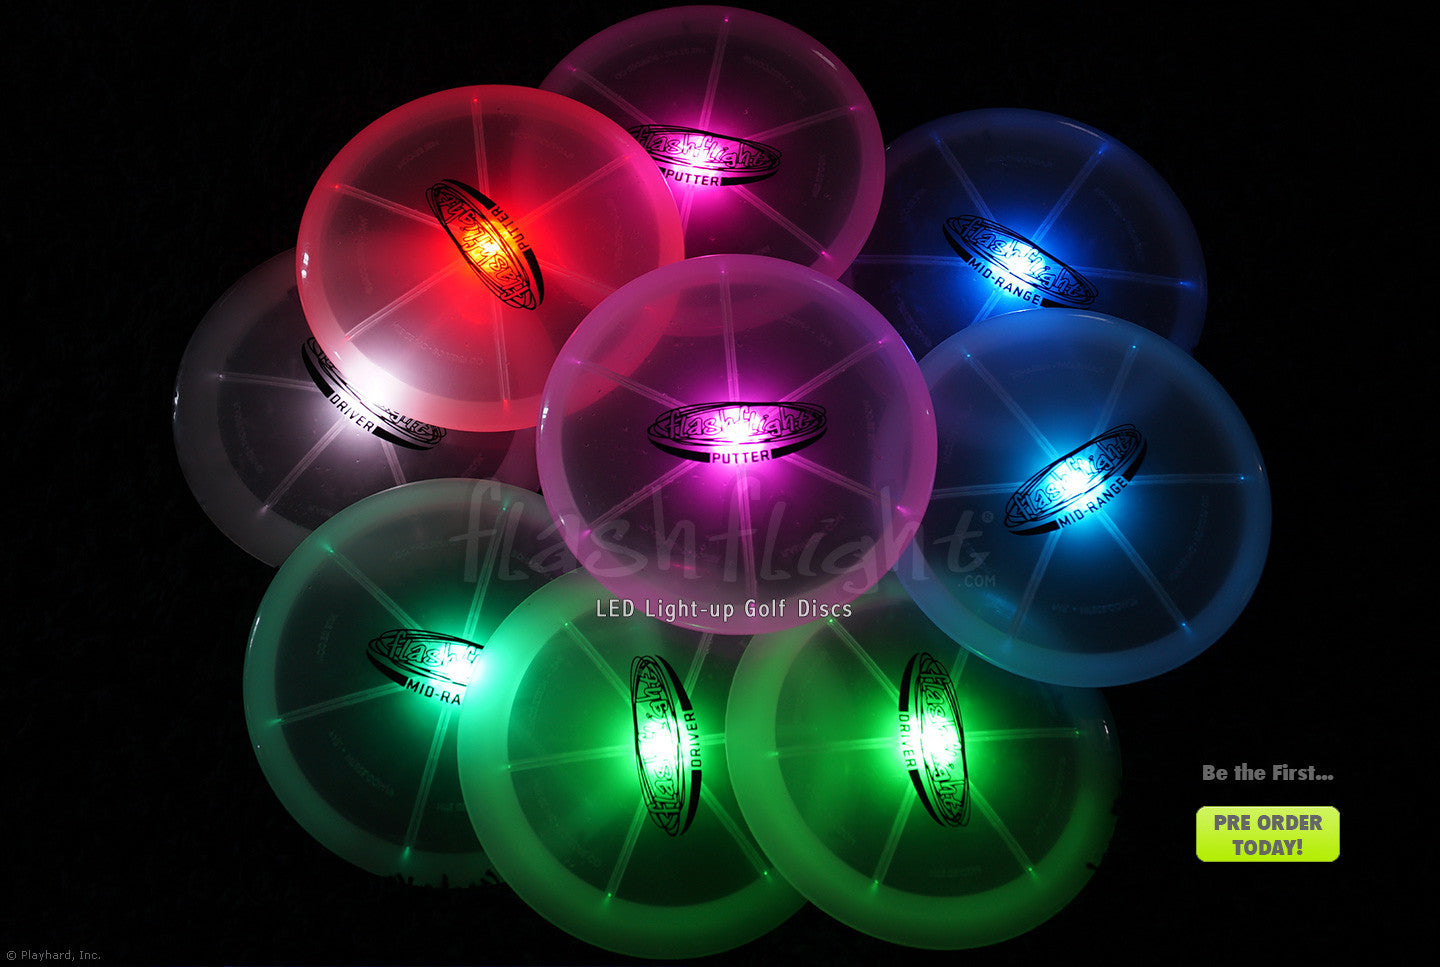 Light-up Golf Discs